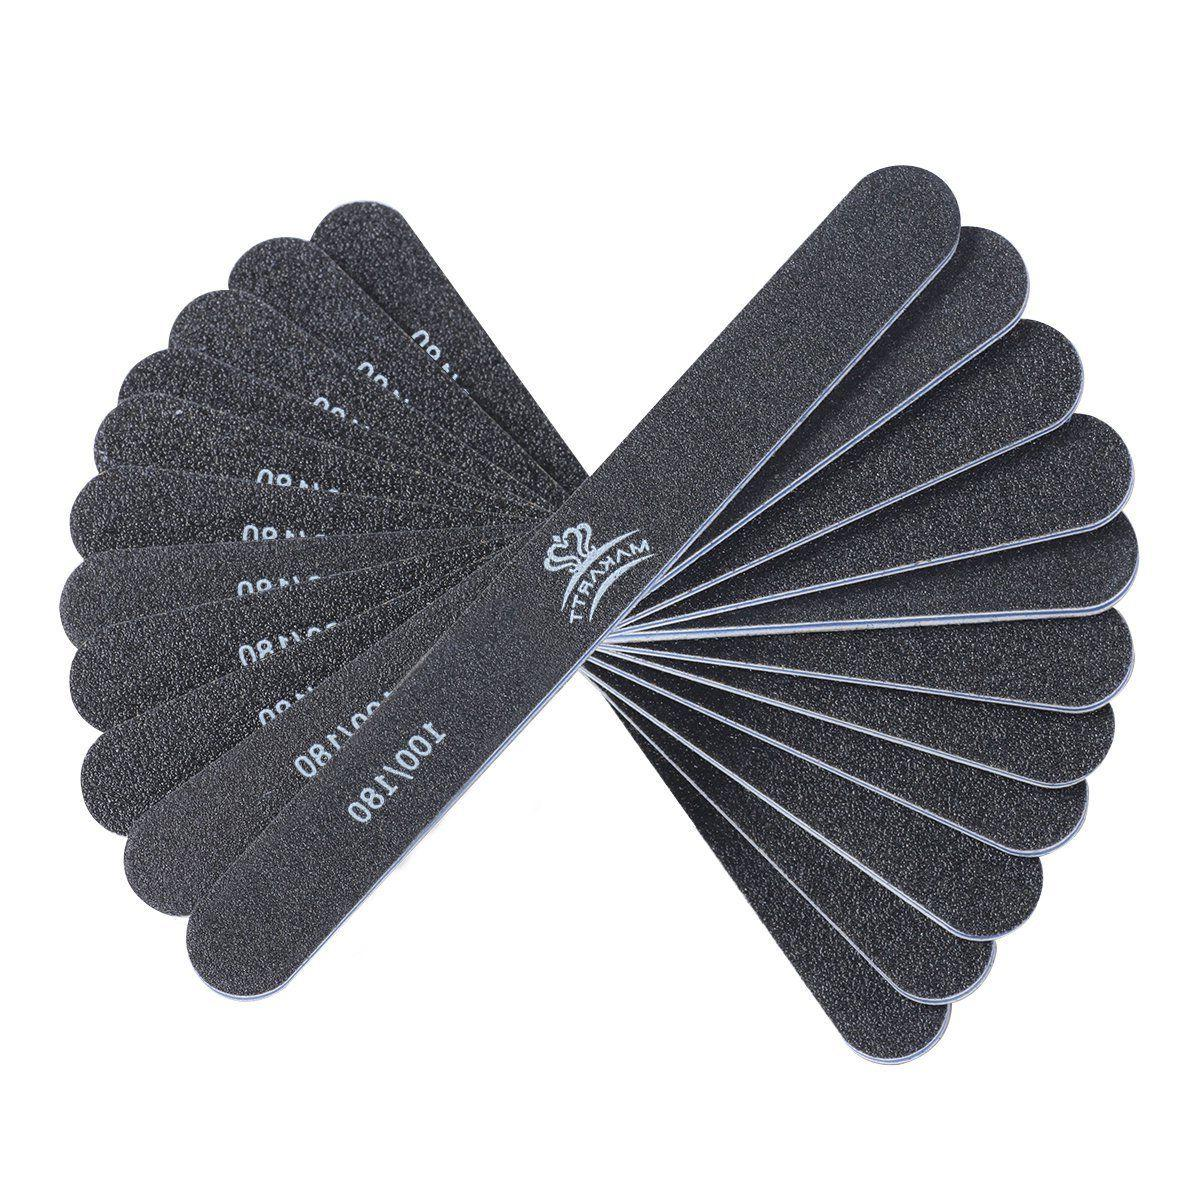 professional nail files black washable double sided